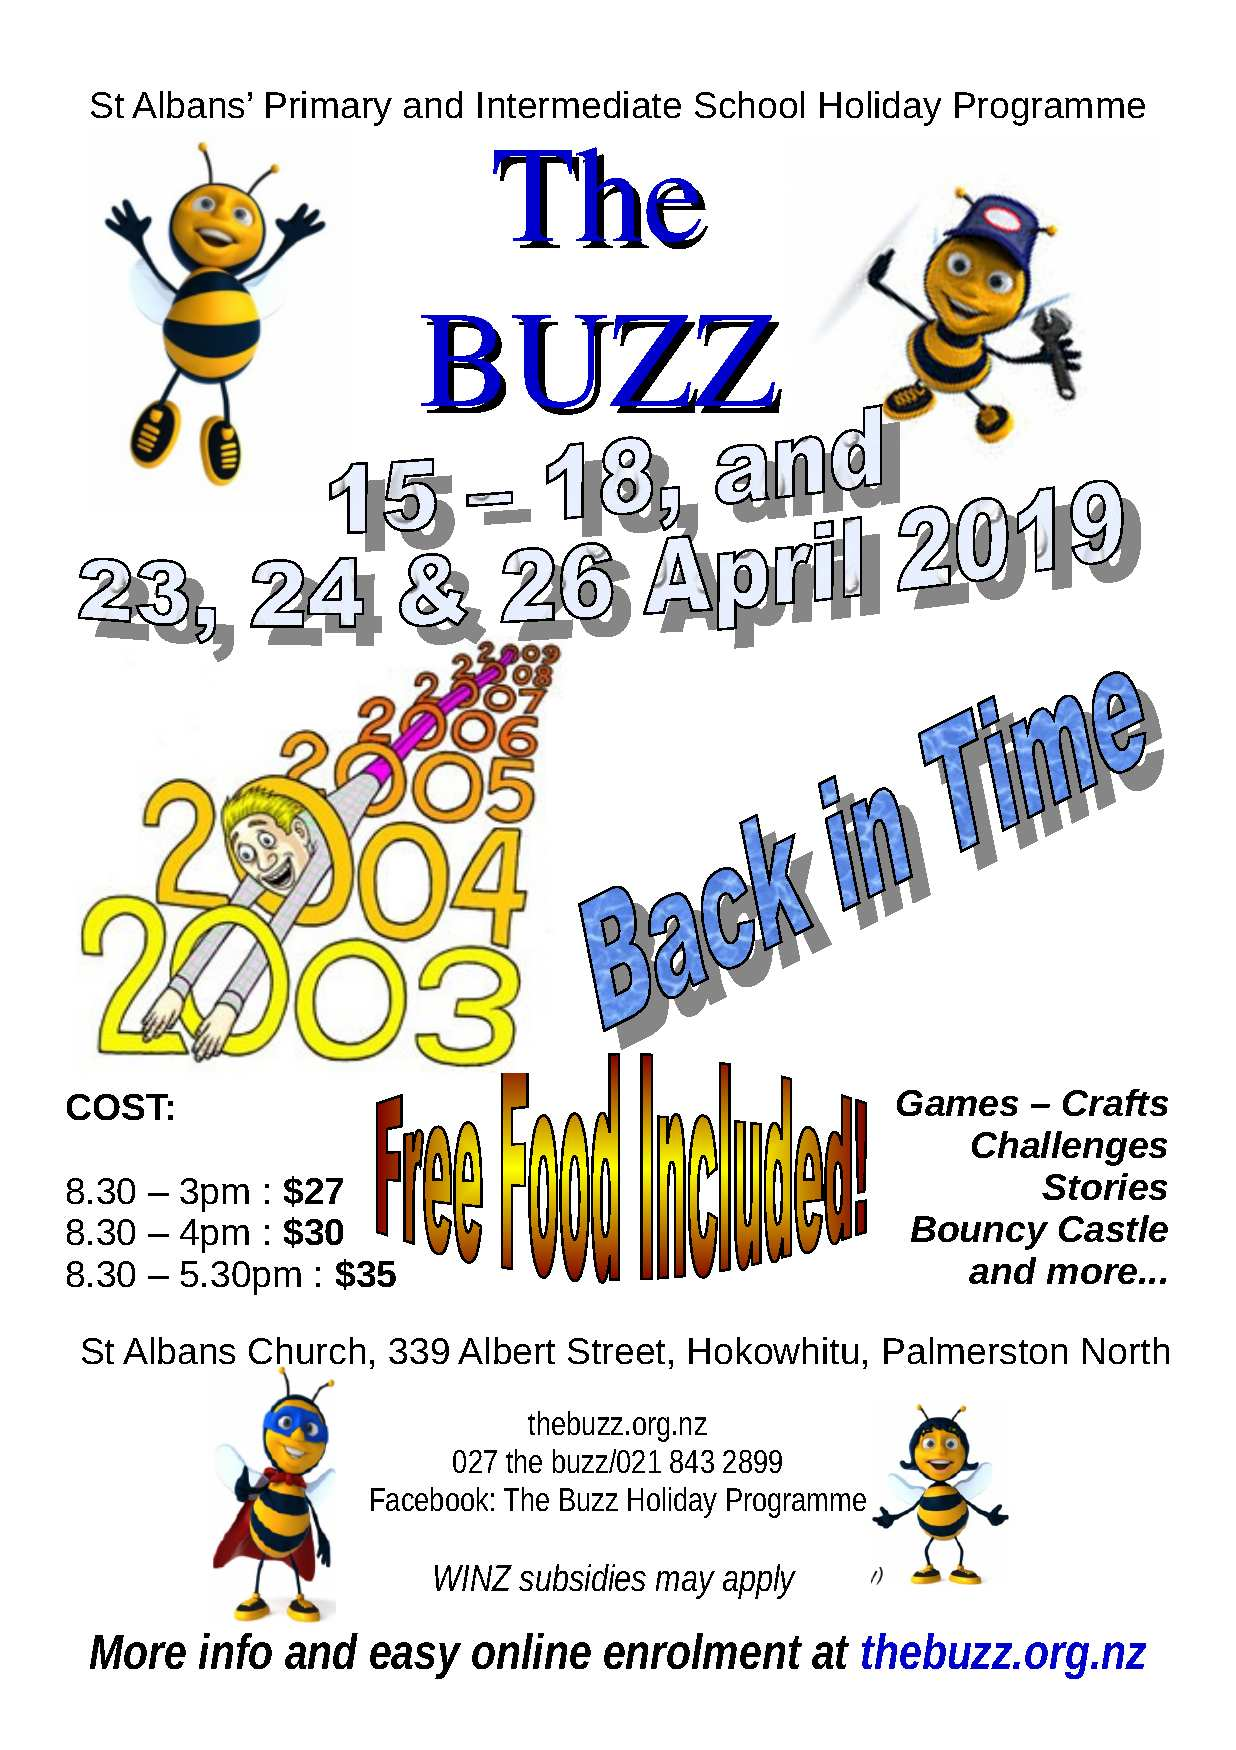 The Buzz Holiday Programme